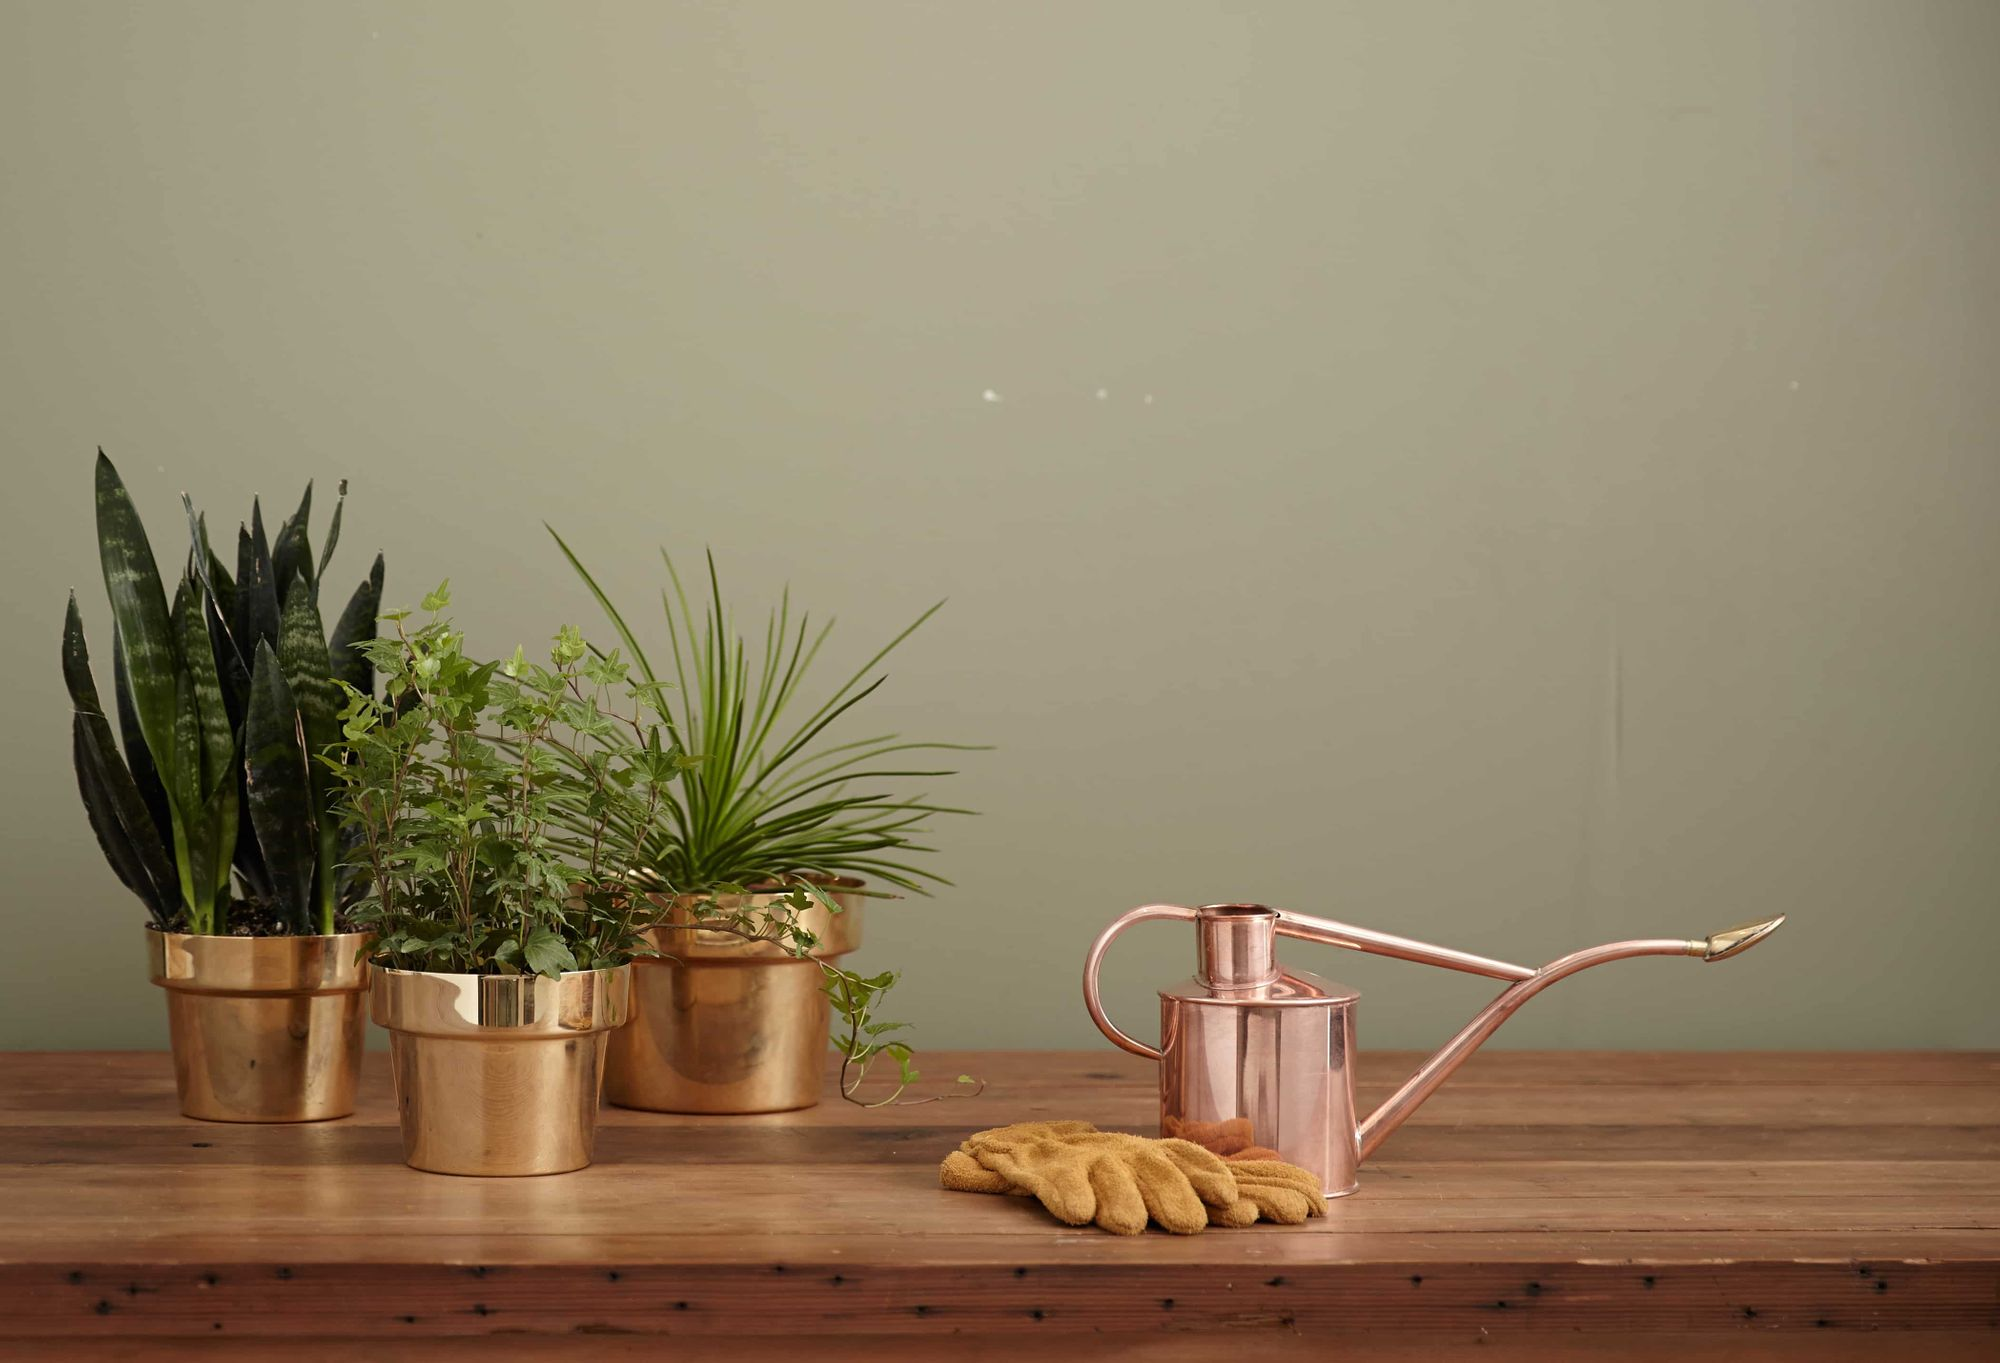 house plants on table next to gardening gloves and watering can